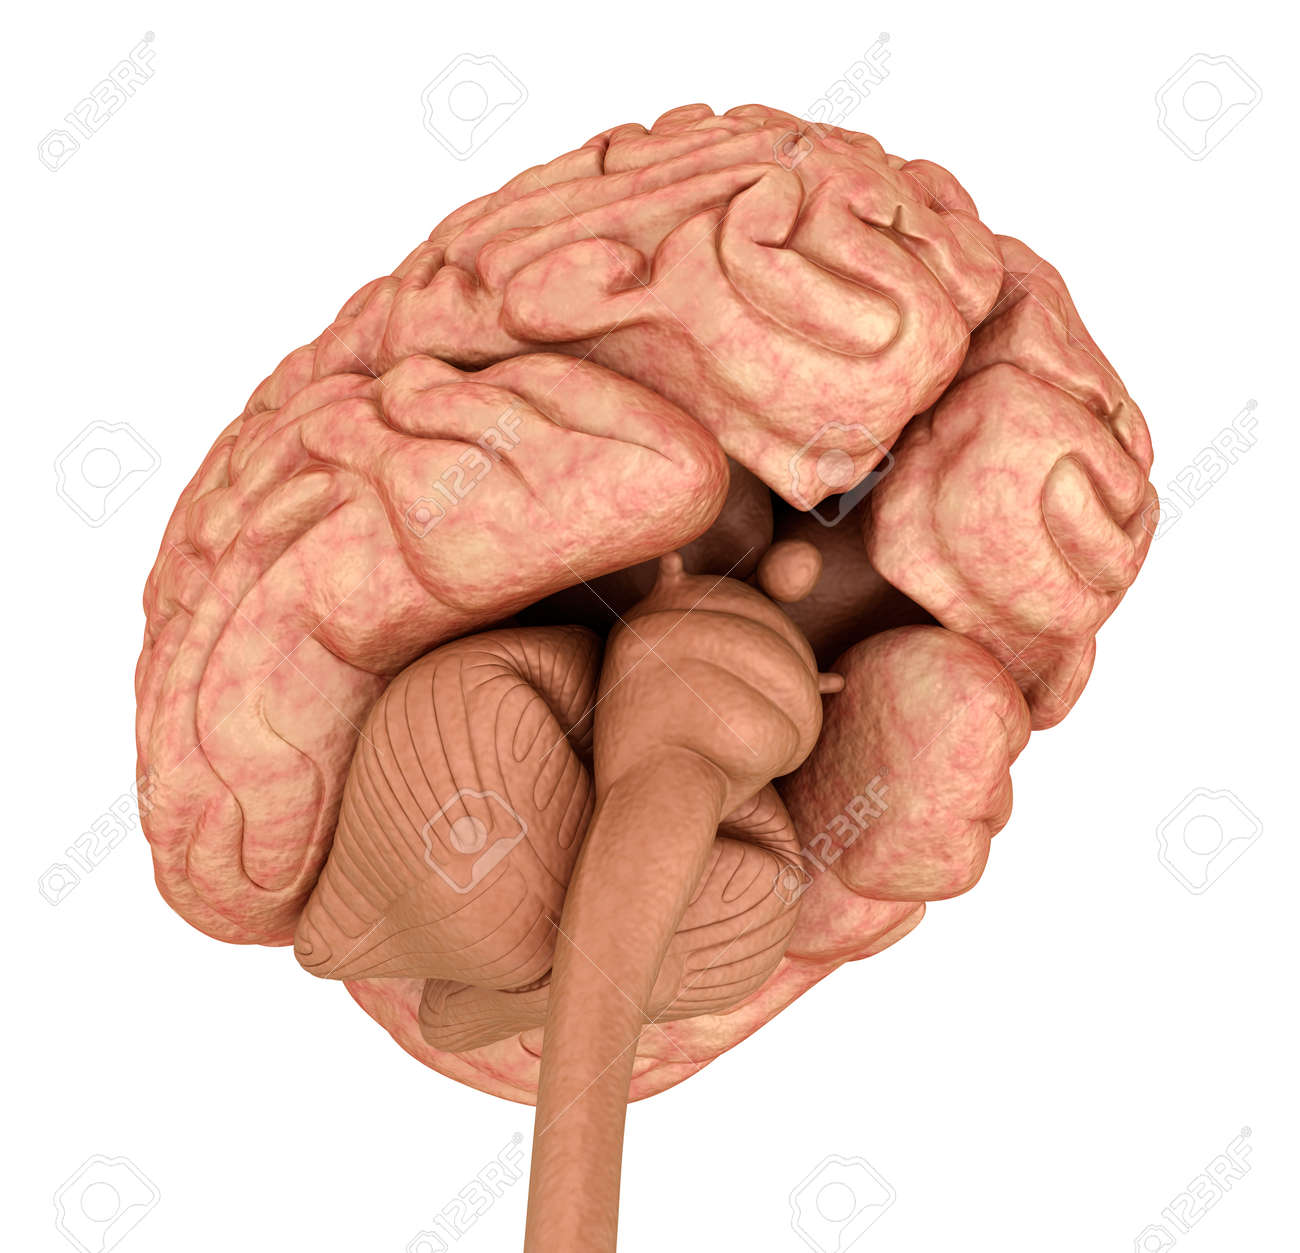 Human Brain 3D Model, Isolated On White. Medically Accurate 3D ...